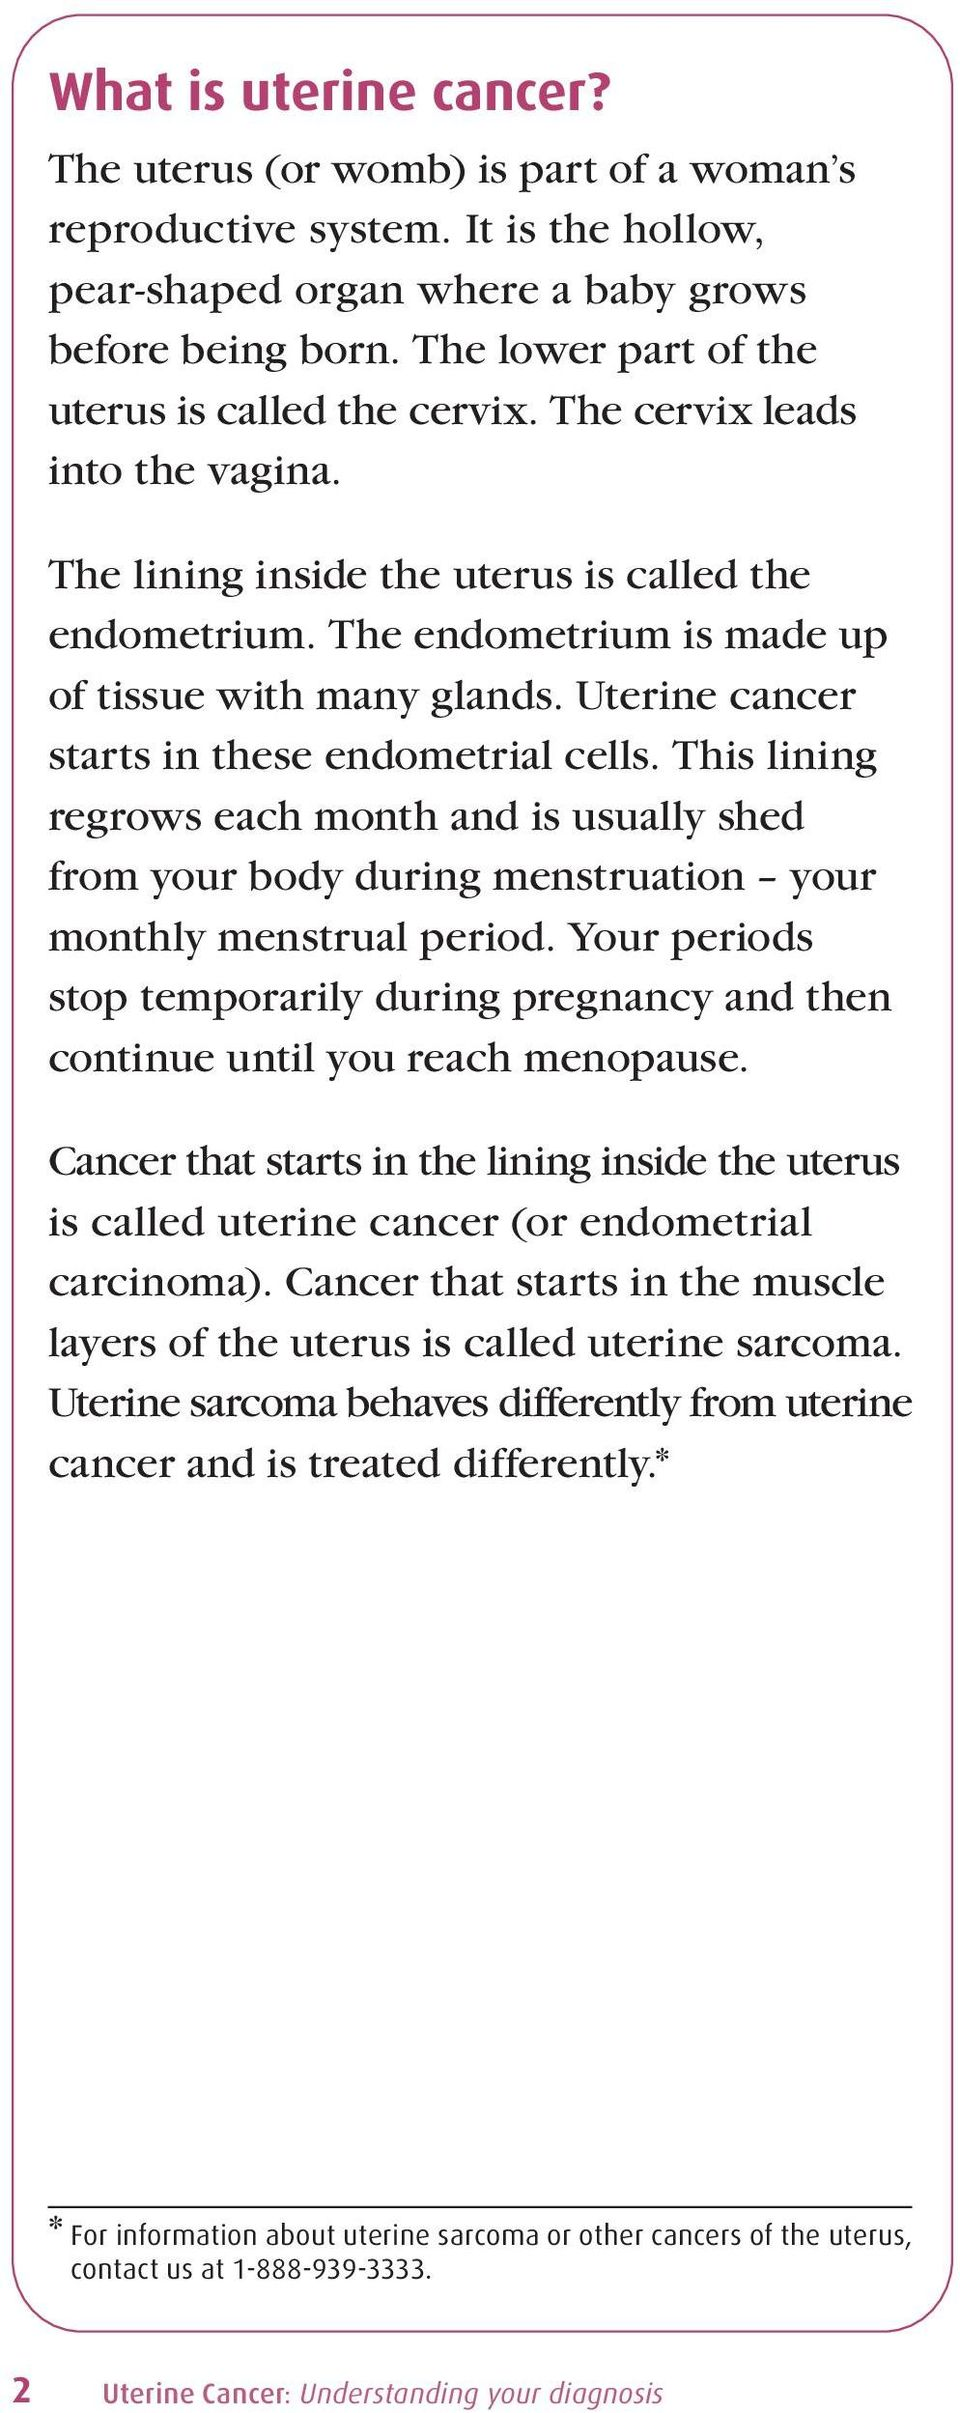 Uterine cancer starts in these endometrial cells. This lining regrows each month and is usually shed from your body during menstruation your monthly menstrual period.